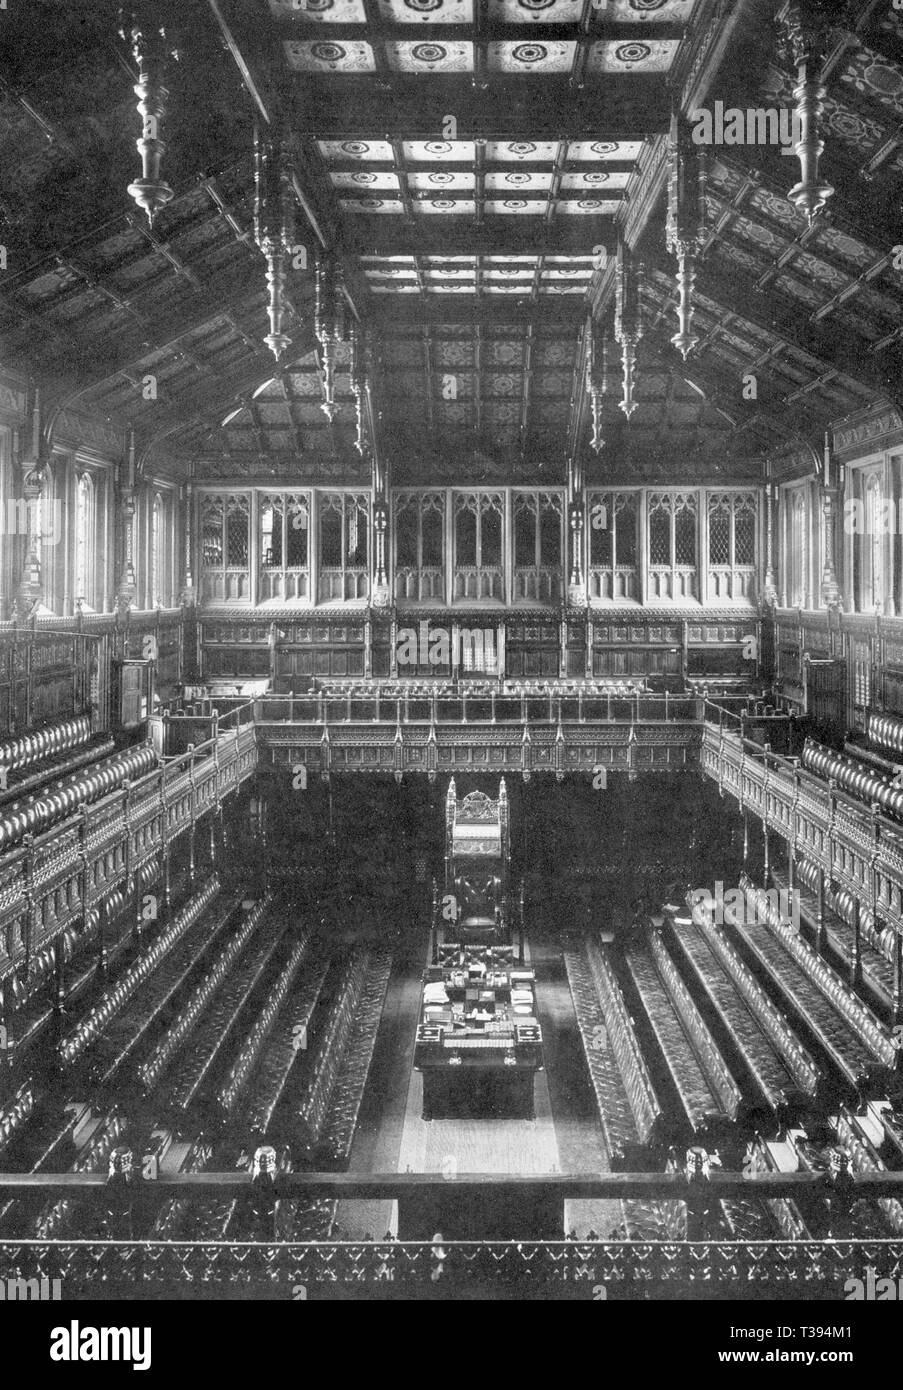 British House of Commons chamber at the Palace of Westminster, prior to its destruction during the Second World War. Old House of Commons chamber Stock Photo